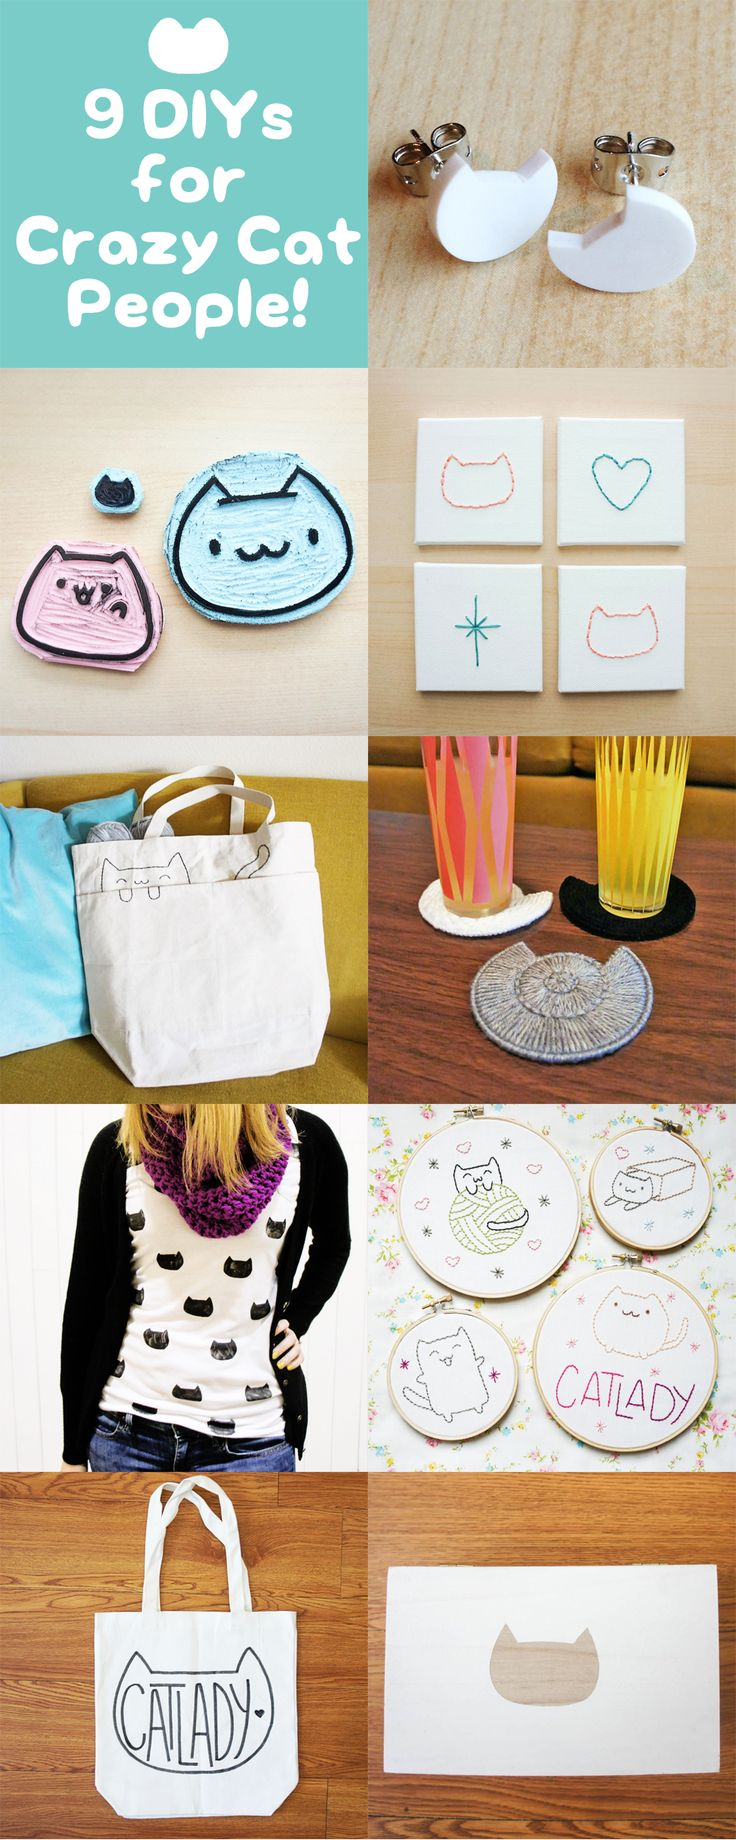 9 DIYs for Crazy Cat People